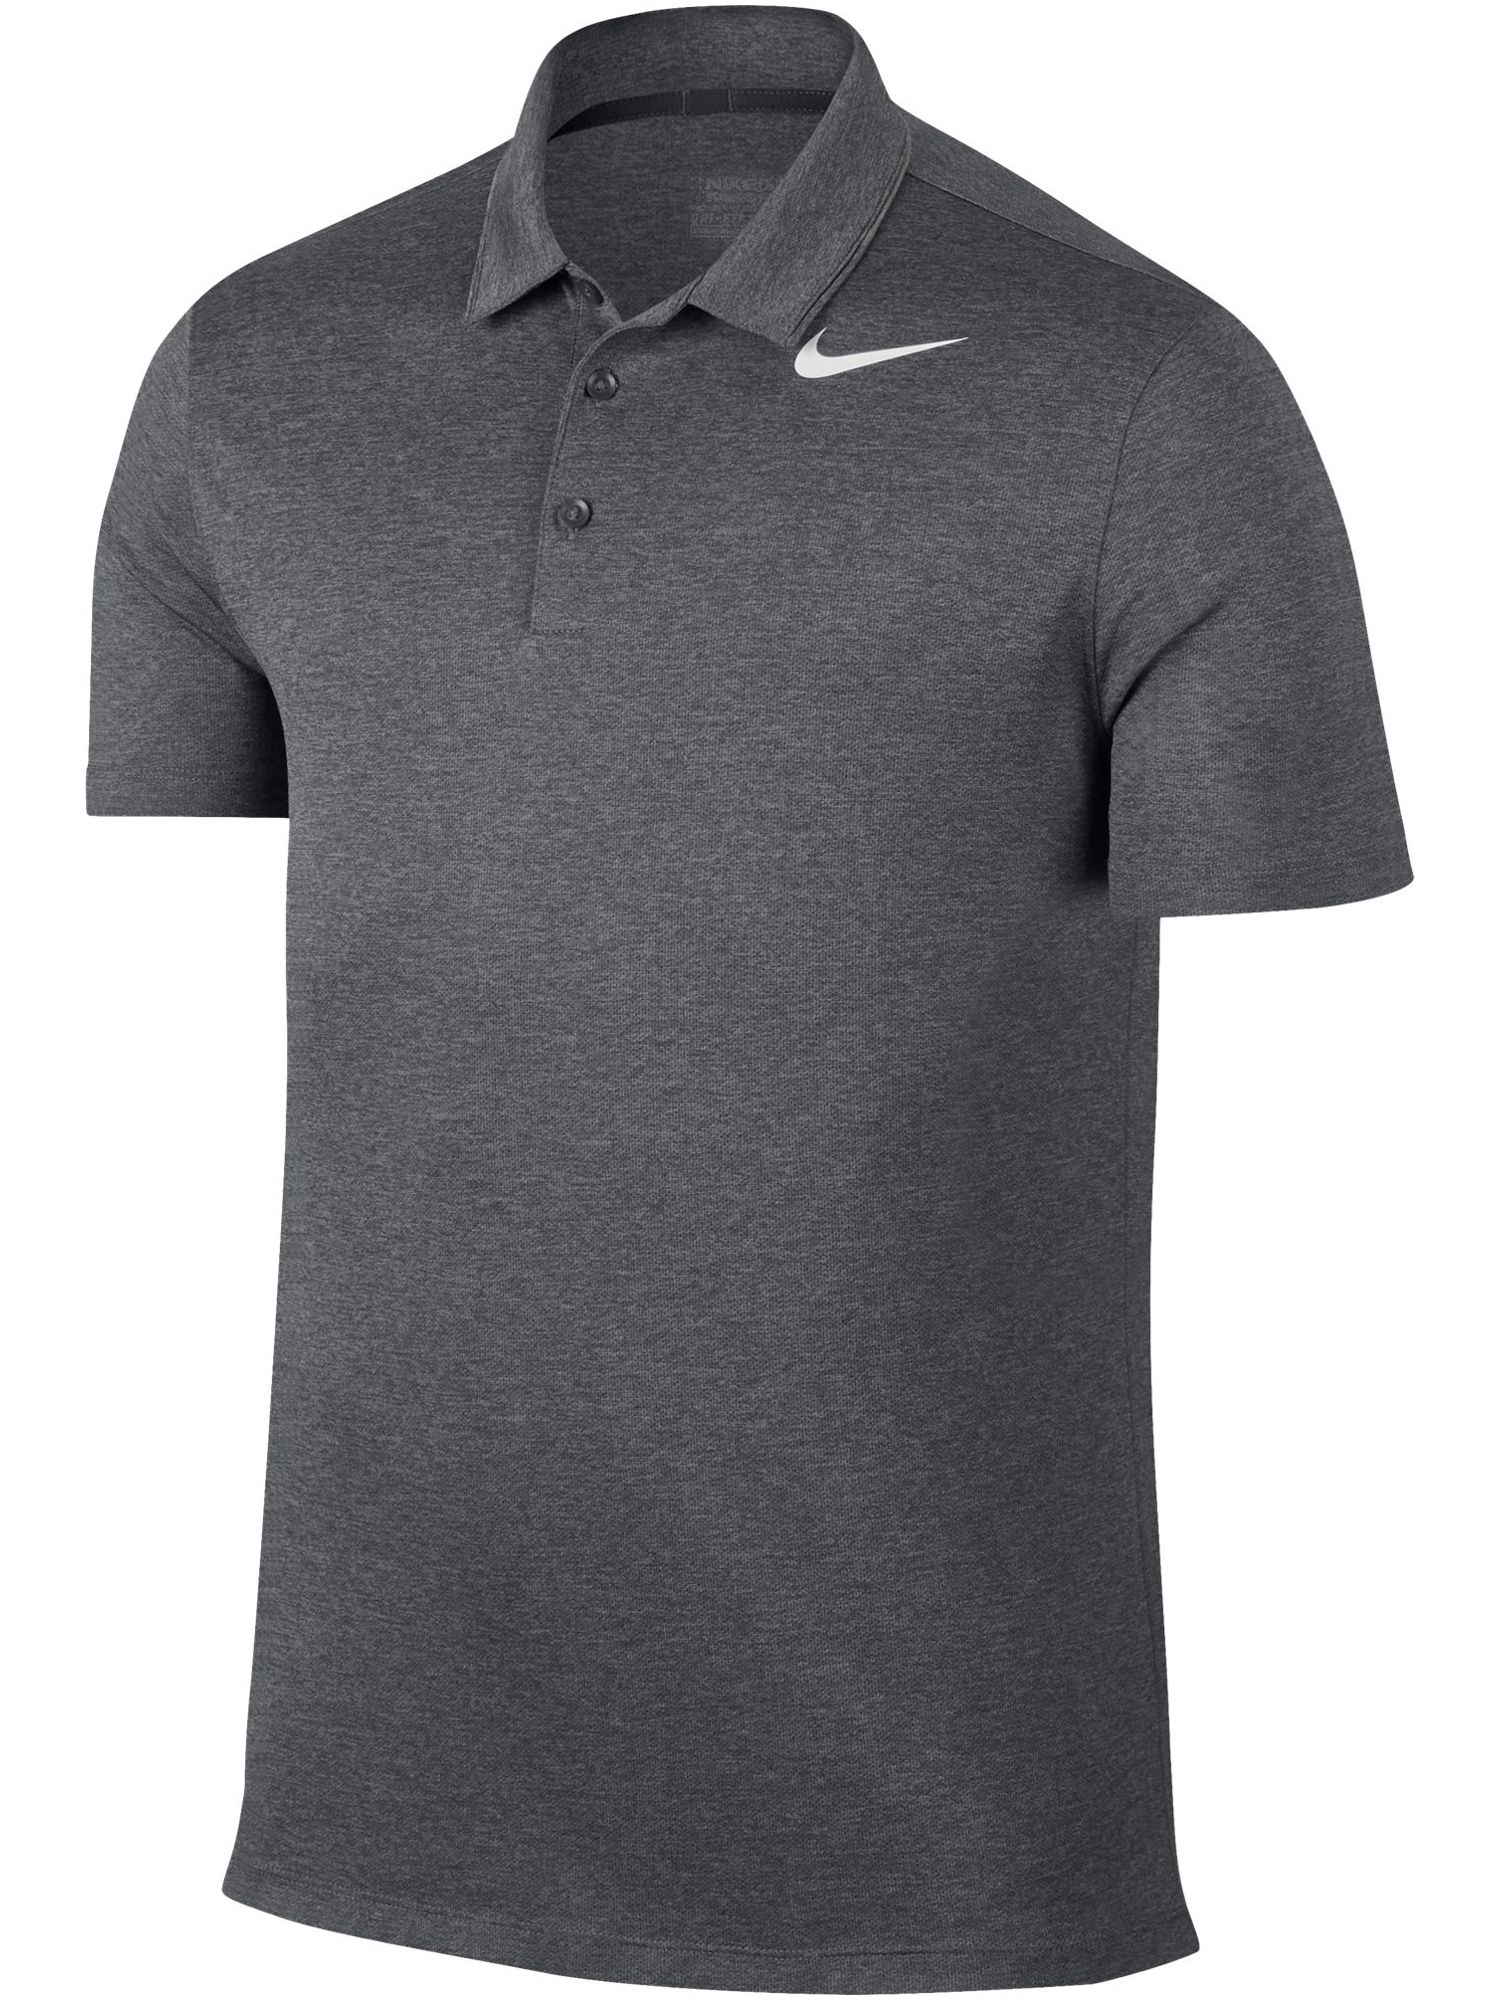 Men's Nike Breathe Heather Polo, Grey